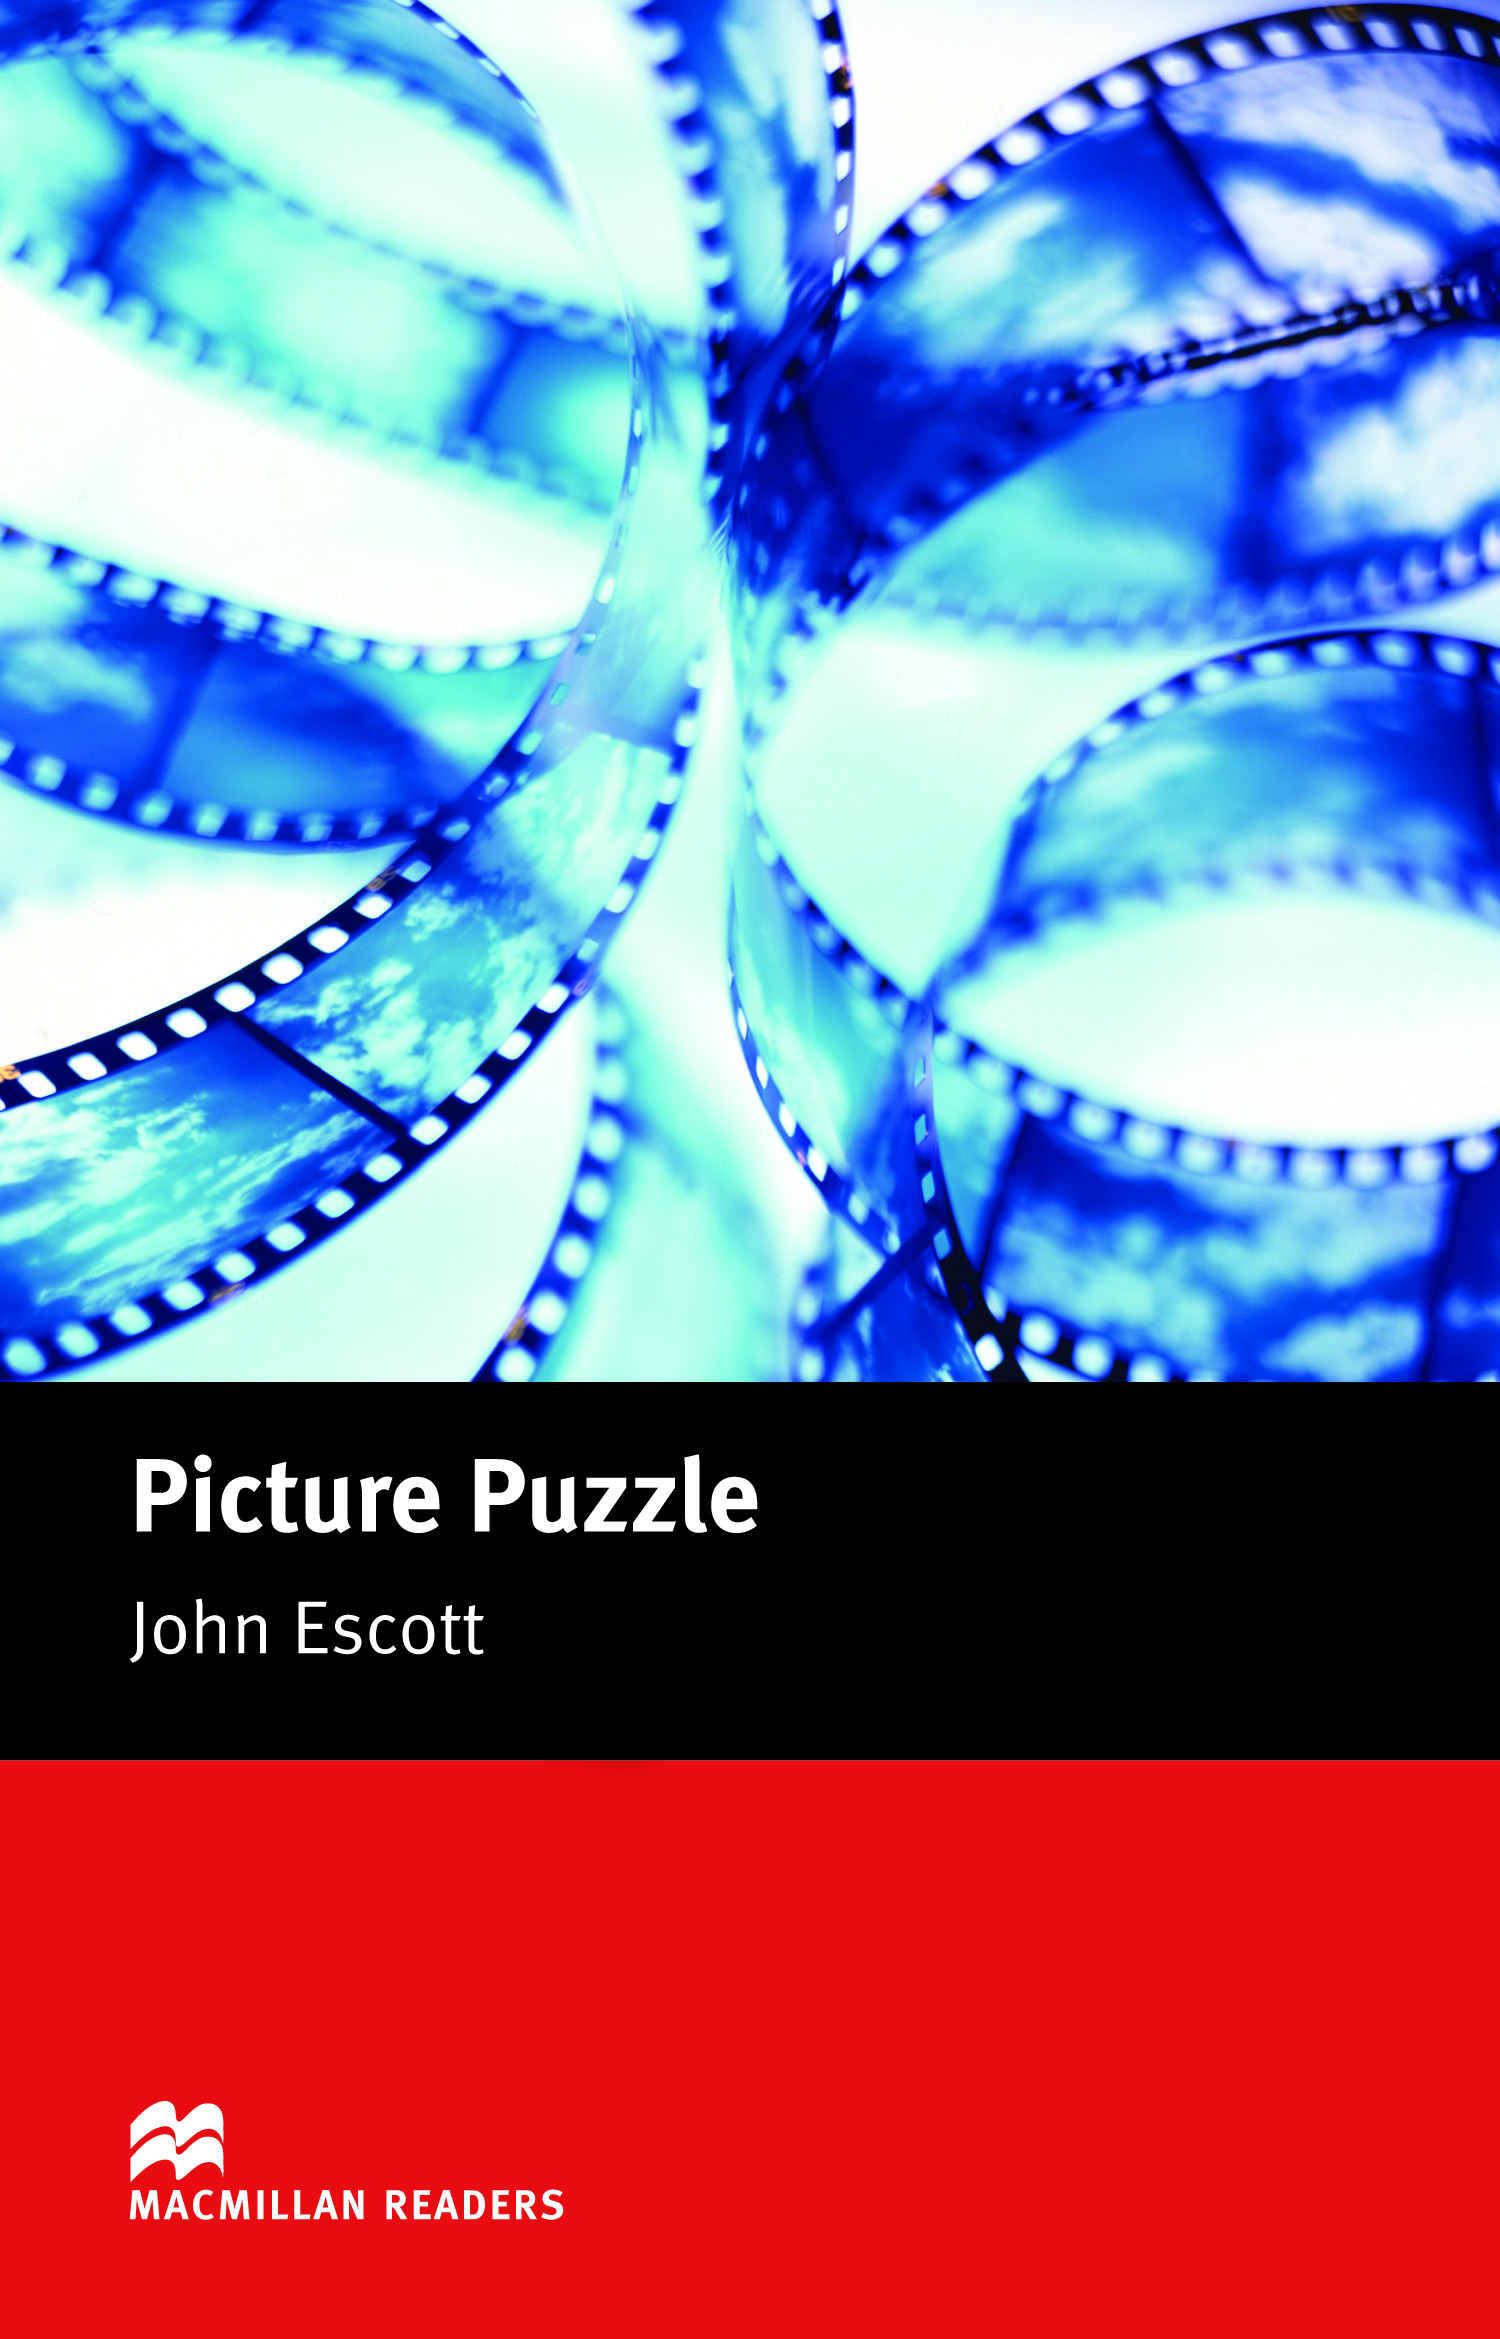 Macmillan Readers: Picture Puzzle